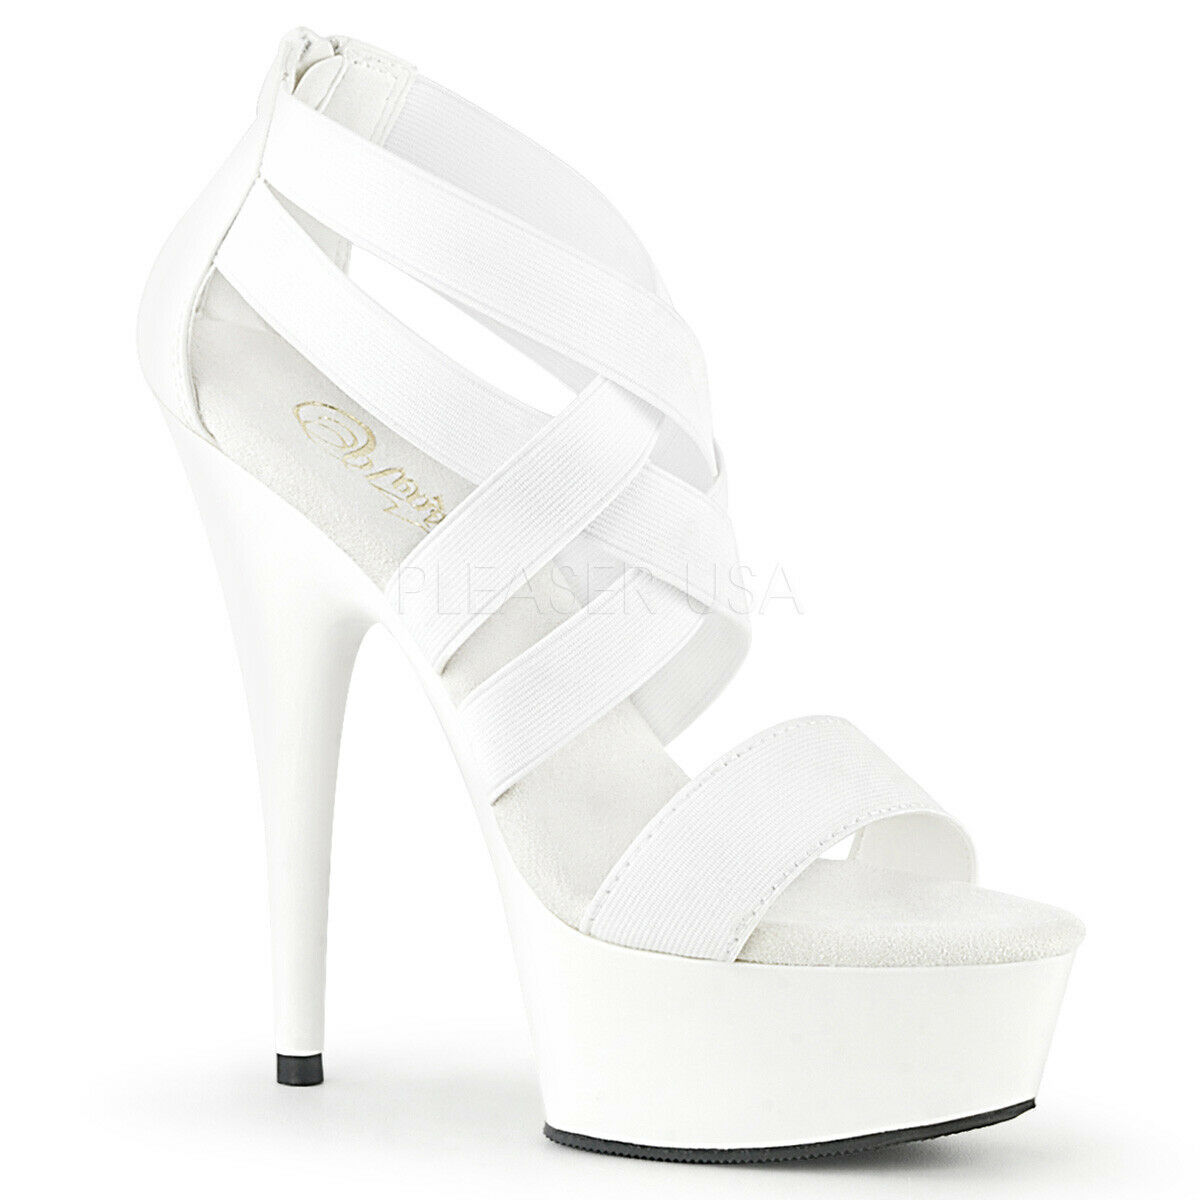 closer at offer discounts first look Sexy White Platform High Heels Mens Drag Queen Crossdresser Shoes size 12  13 14